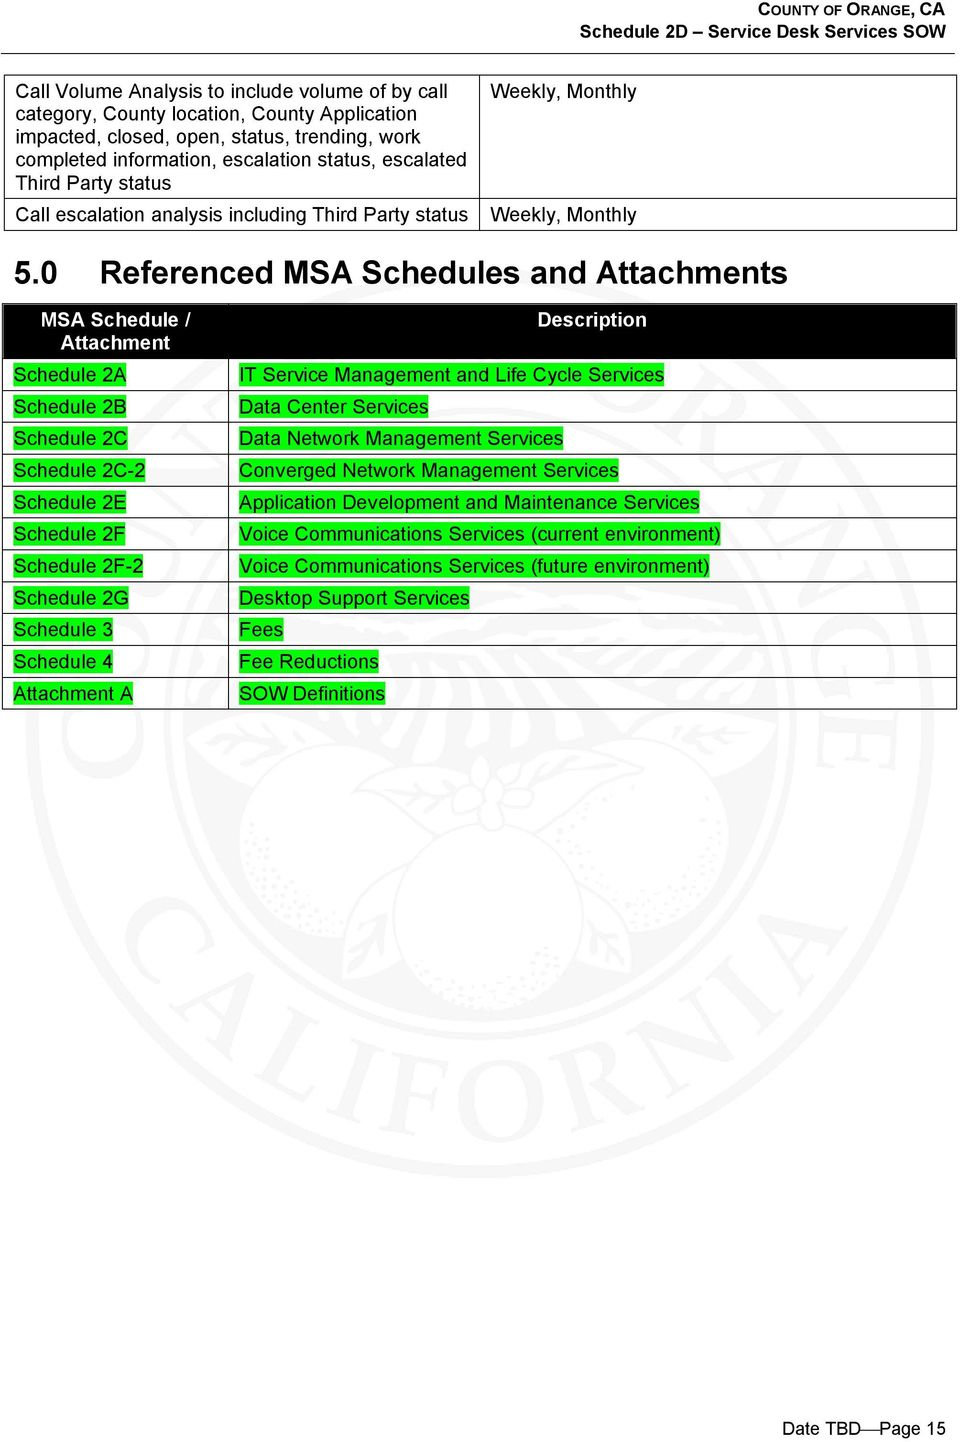 0 Referenced MSA Schedules and Attachments MSA Schedule / Attachment Schedule 2A Schedule 2B Schedule 2C Schedule 2C-2 Schedule 2E Schedule 2F Schedule 2F-2 Schedule 2G Schedule 3 Schedule 4